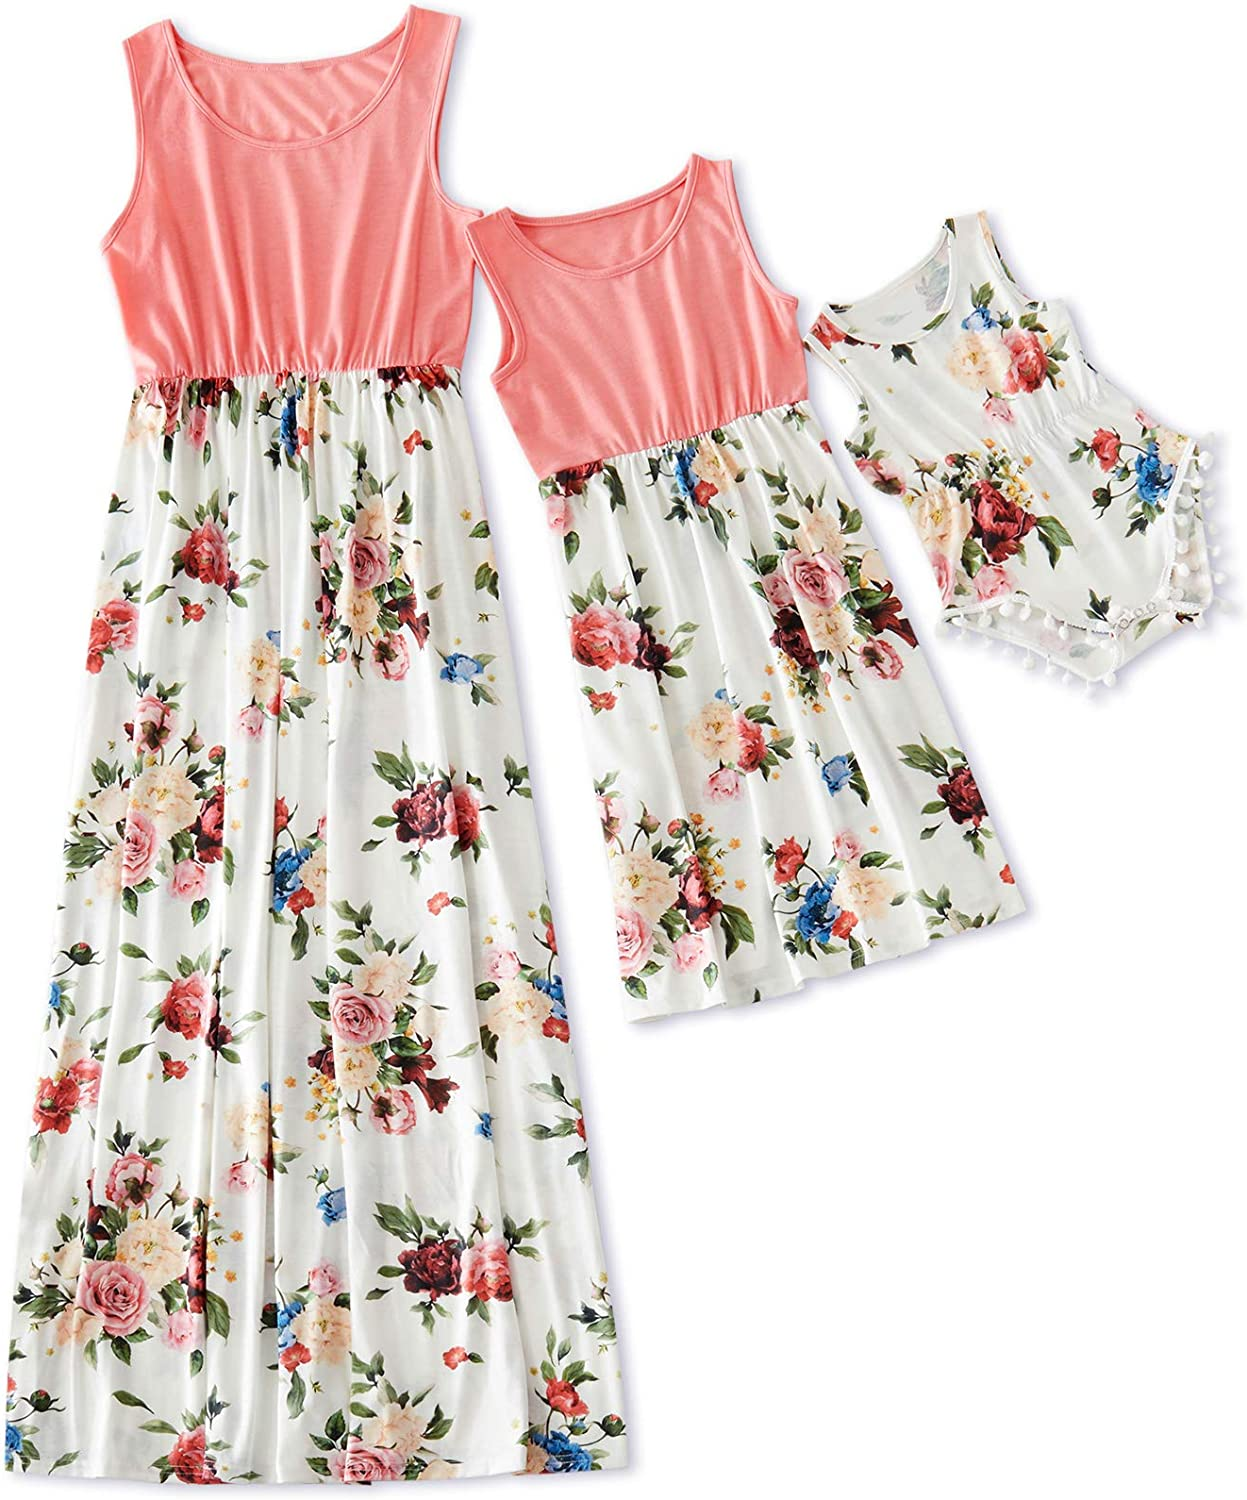 Yaffi Mommy and Me Matching Maxi Dress Floral Printed Sleeveless Dress for Mother and Daughter